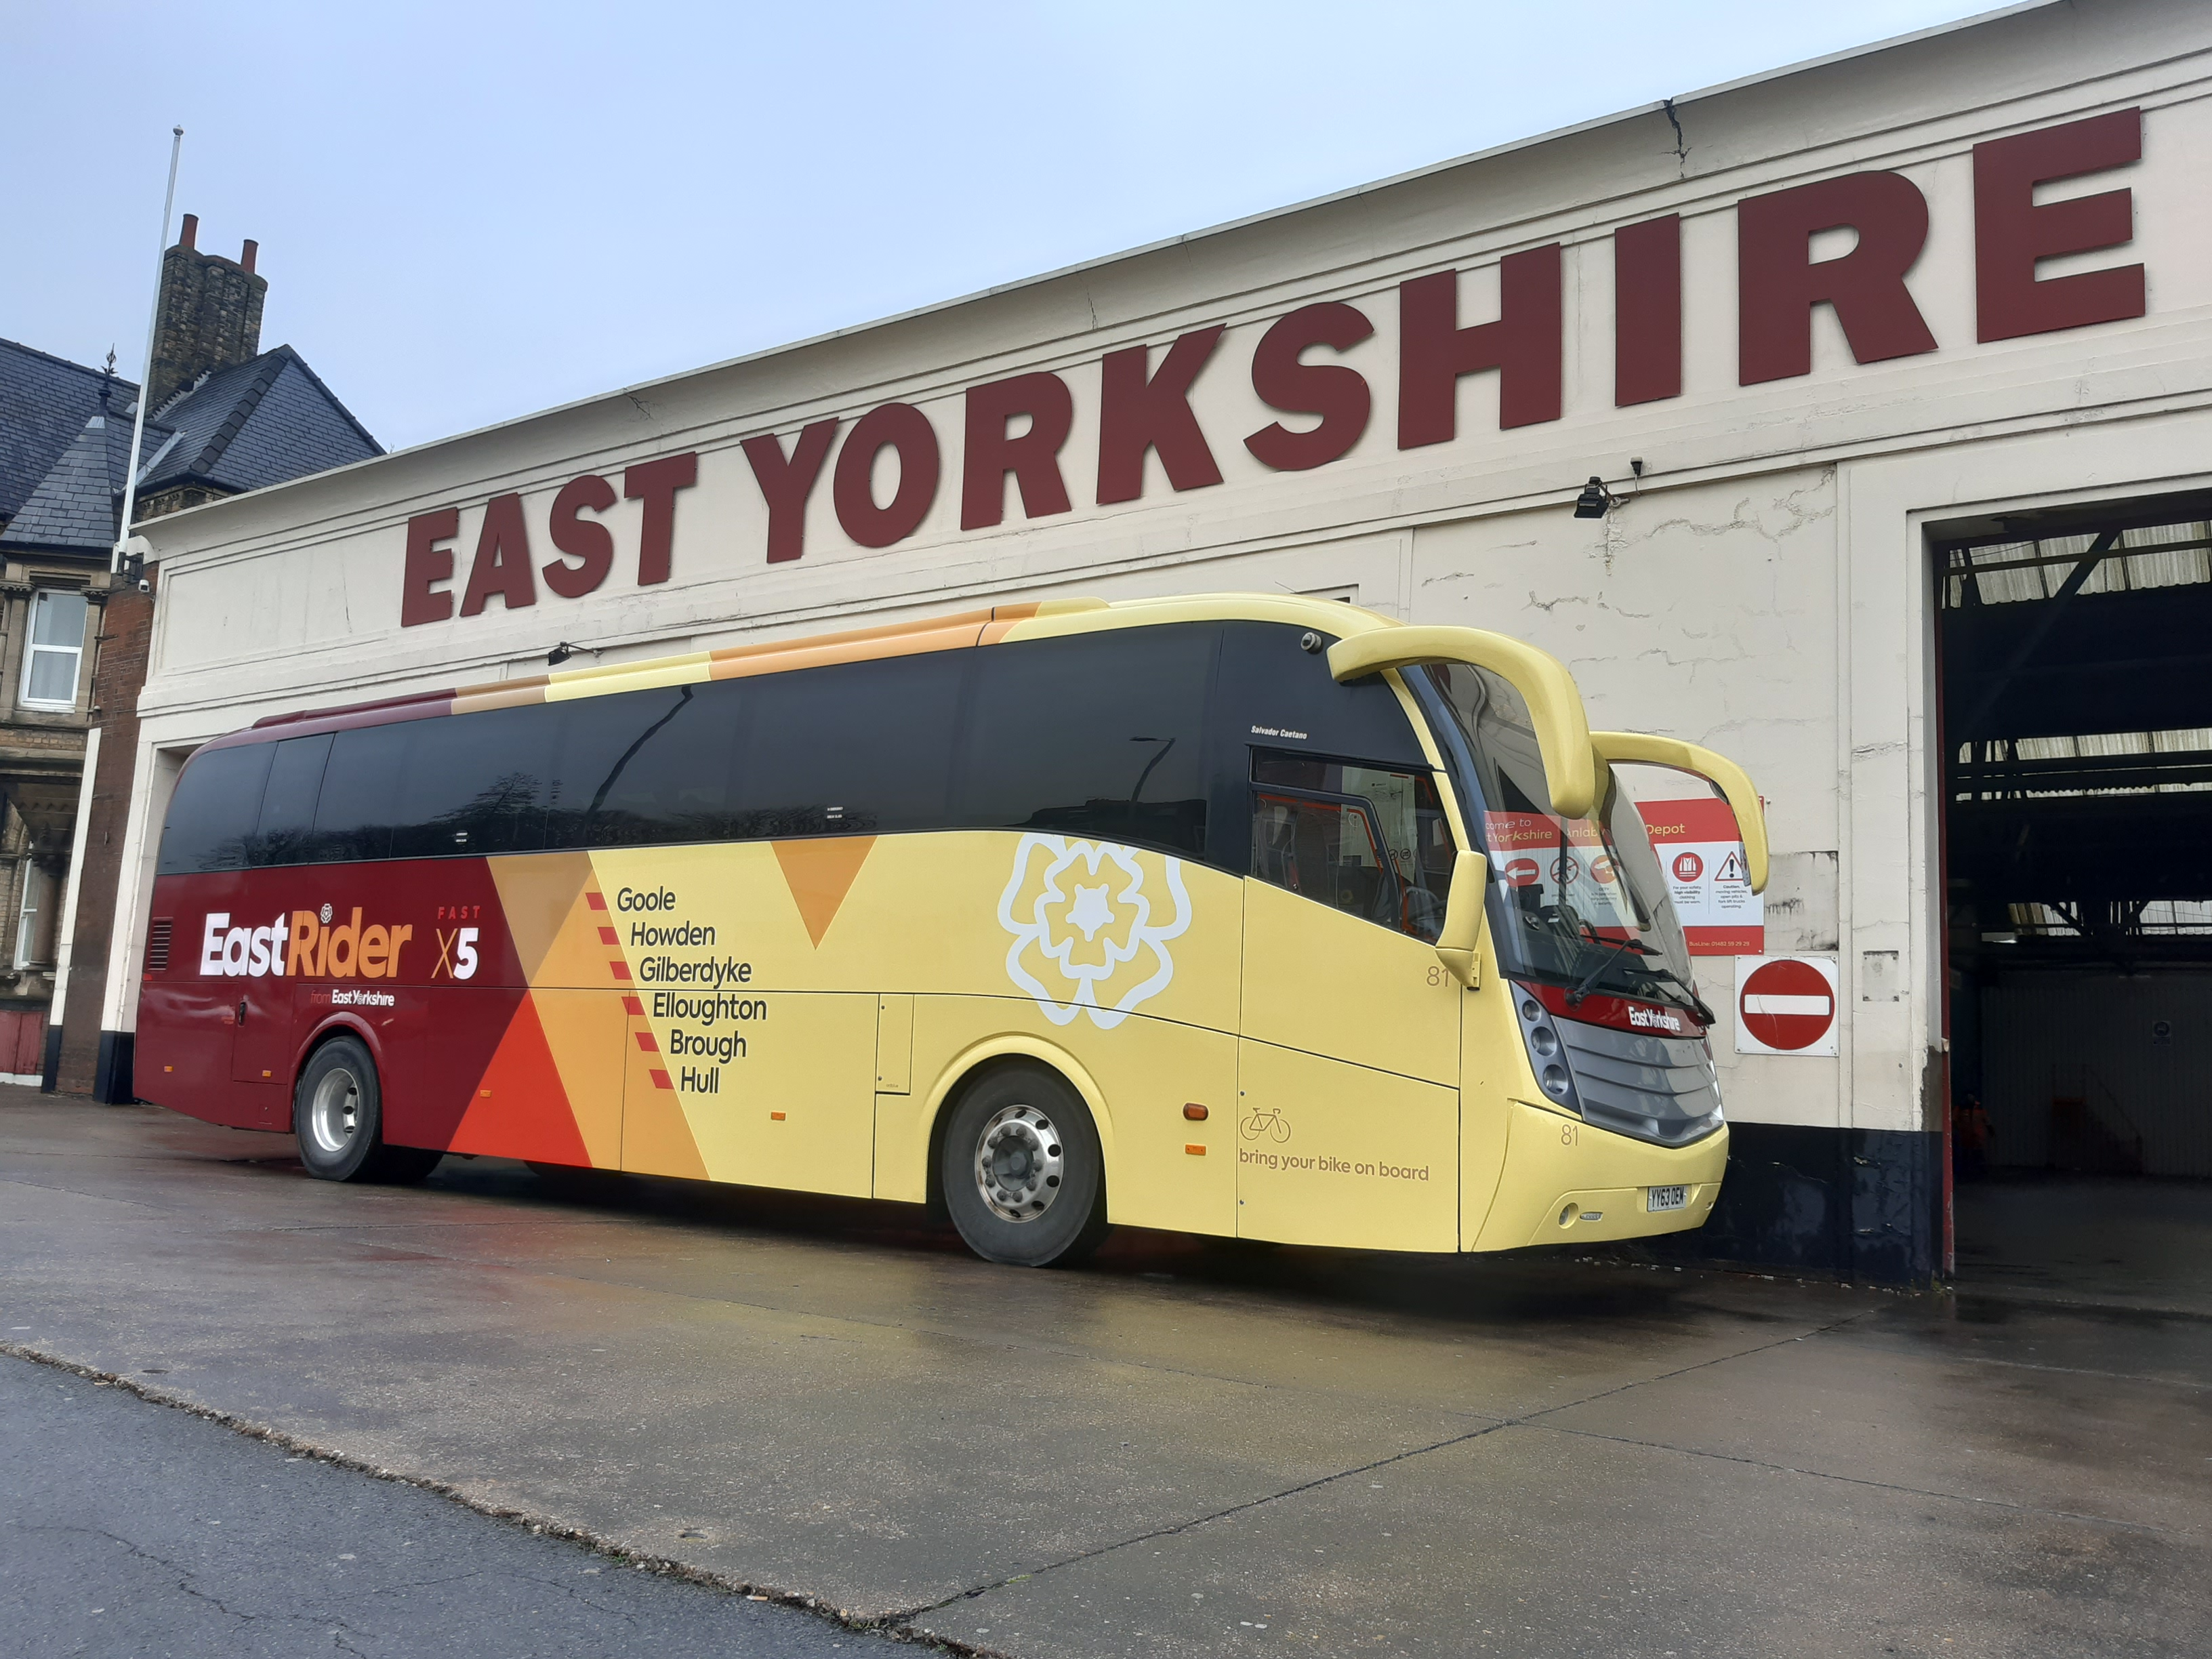 East Yorkshire puts Levante on new express service